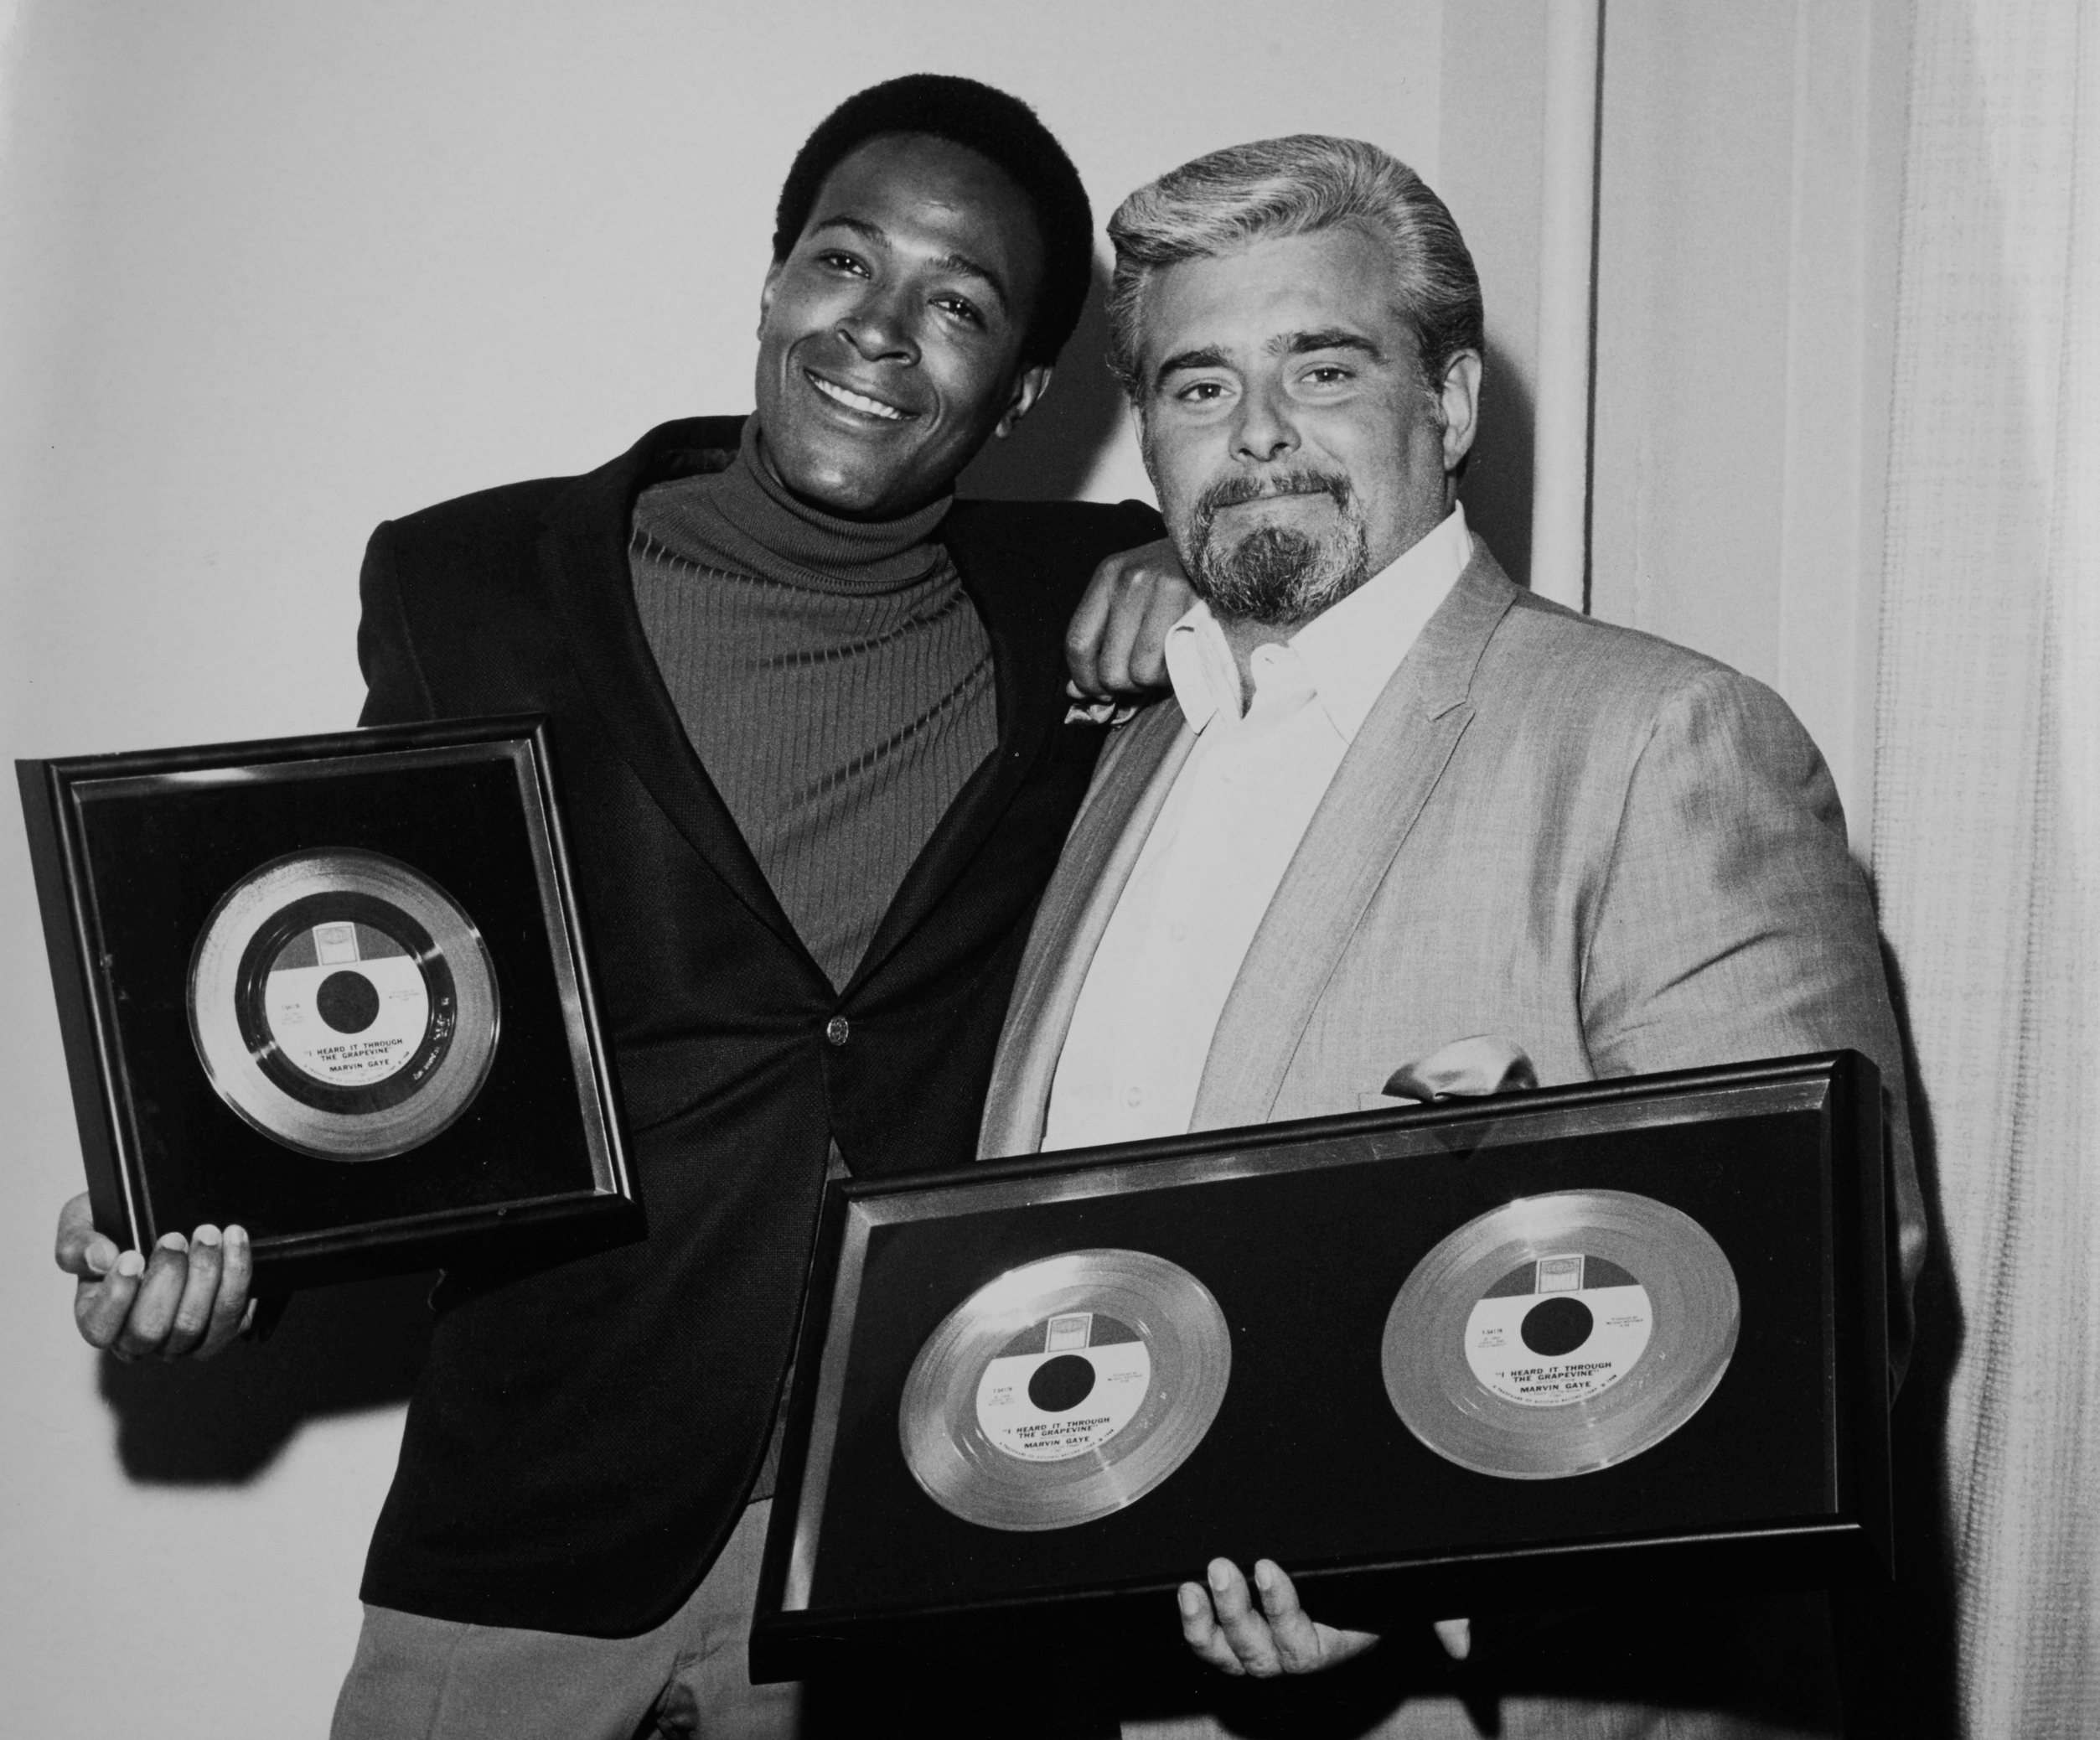 Barney Ales presents Gold Record awards to Marvin Gaye (Photo courtesy of Barney Ales. Used with permission)